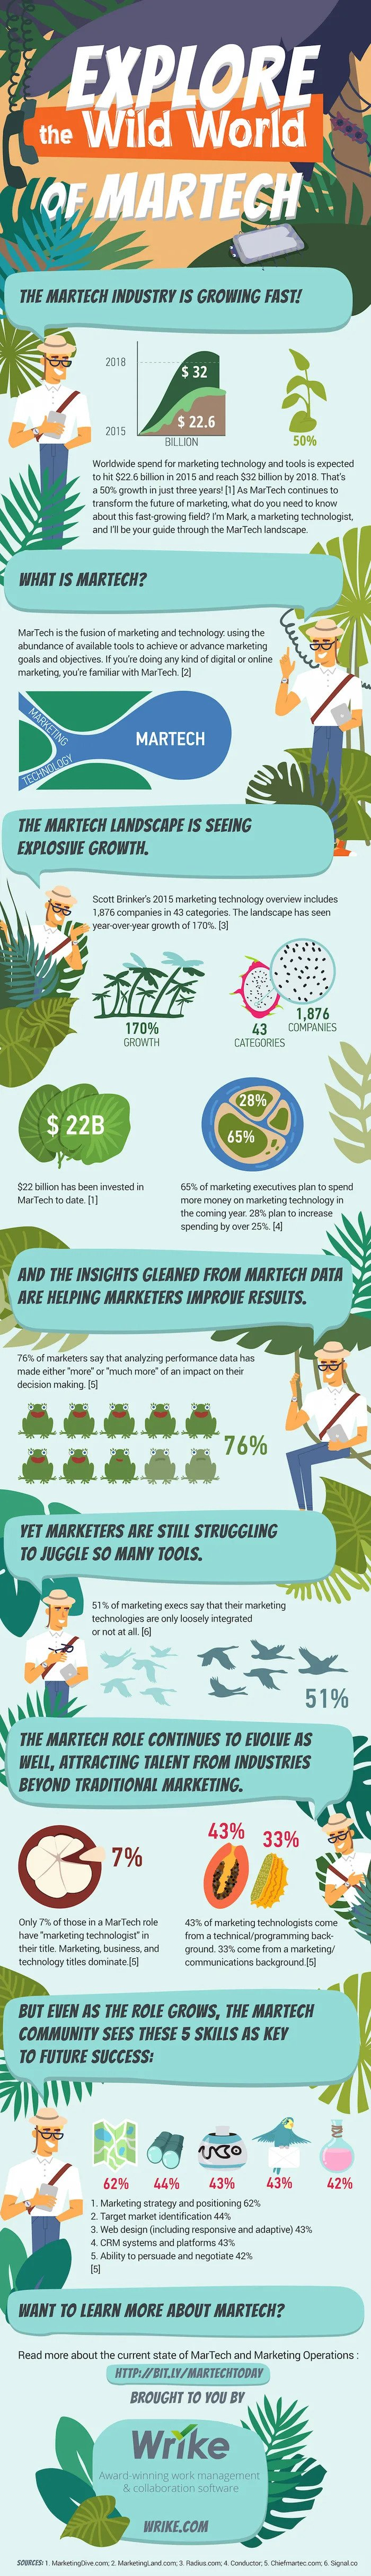 Technology Infographic Explore Wild World Martech